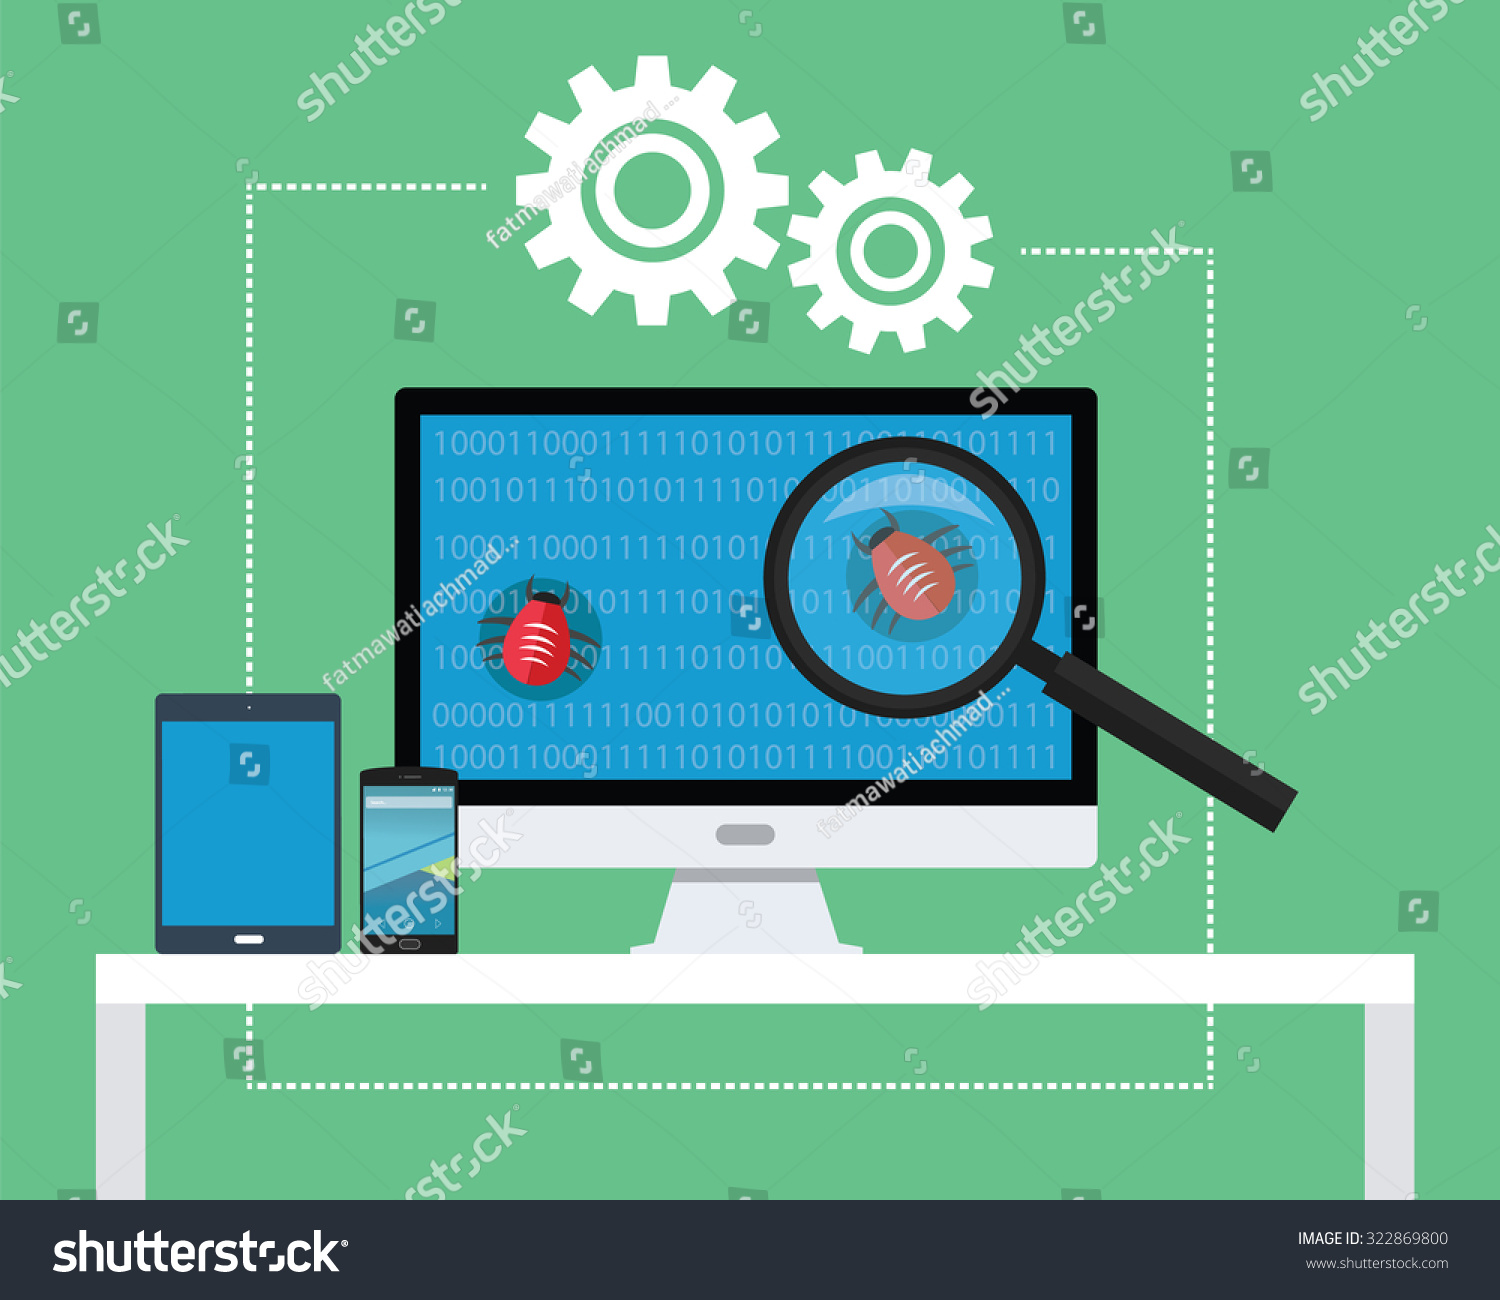 Software testing all devices find bugs stock vector Vector image software